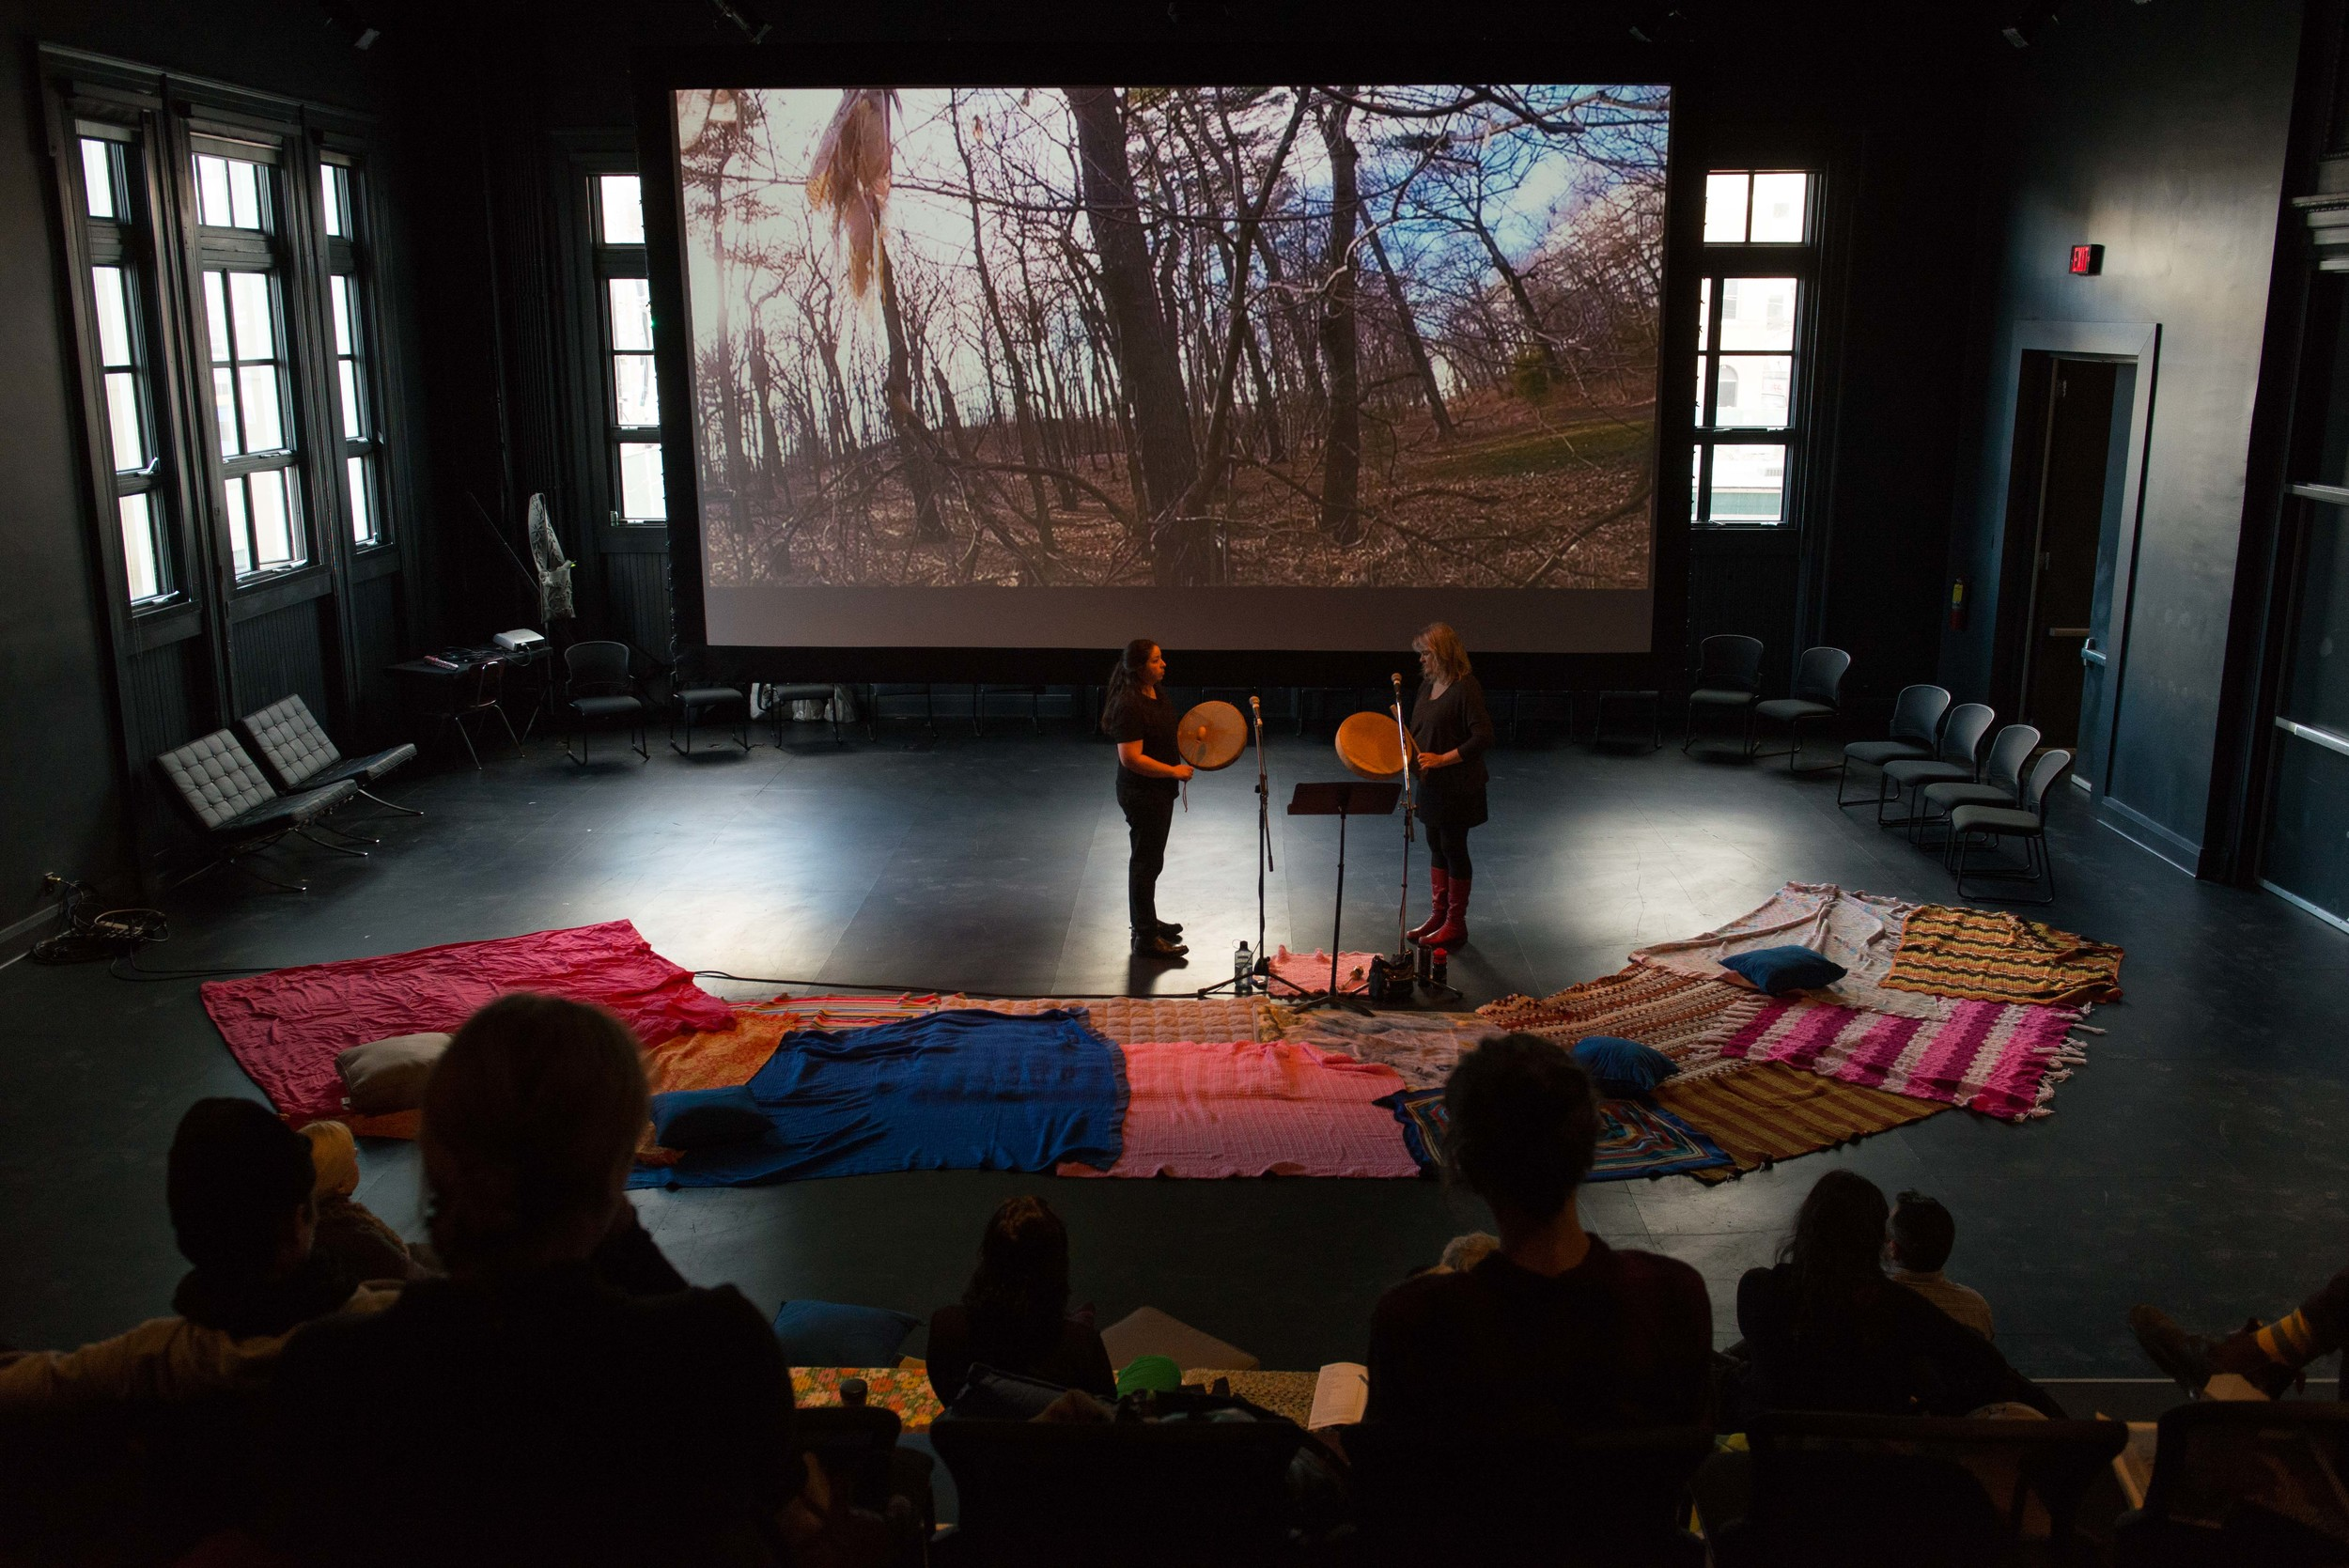 Photo credit: Henry Chan,Nikamon Ochi Askiy (Ke'tapekiaq Ma'qimikew): The Land Sings,Ursula Johnson created in collaboration with Cheryl L'Hirondelle,presented by FADO Performance Art Centre 2016.